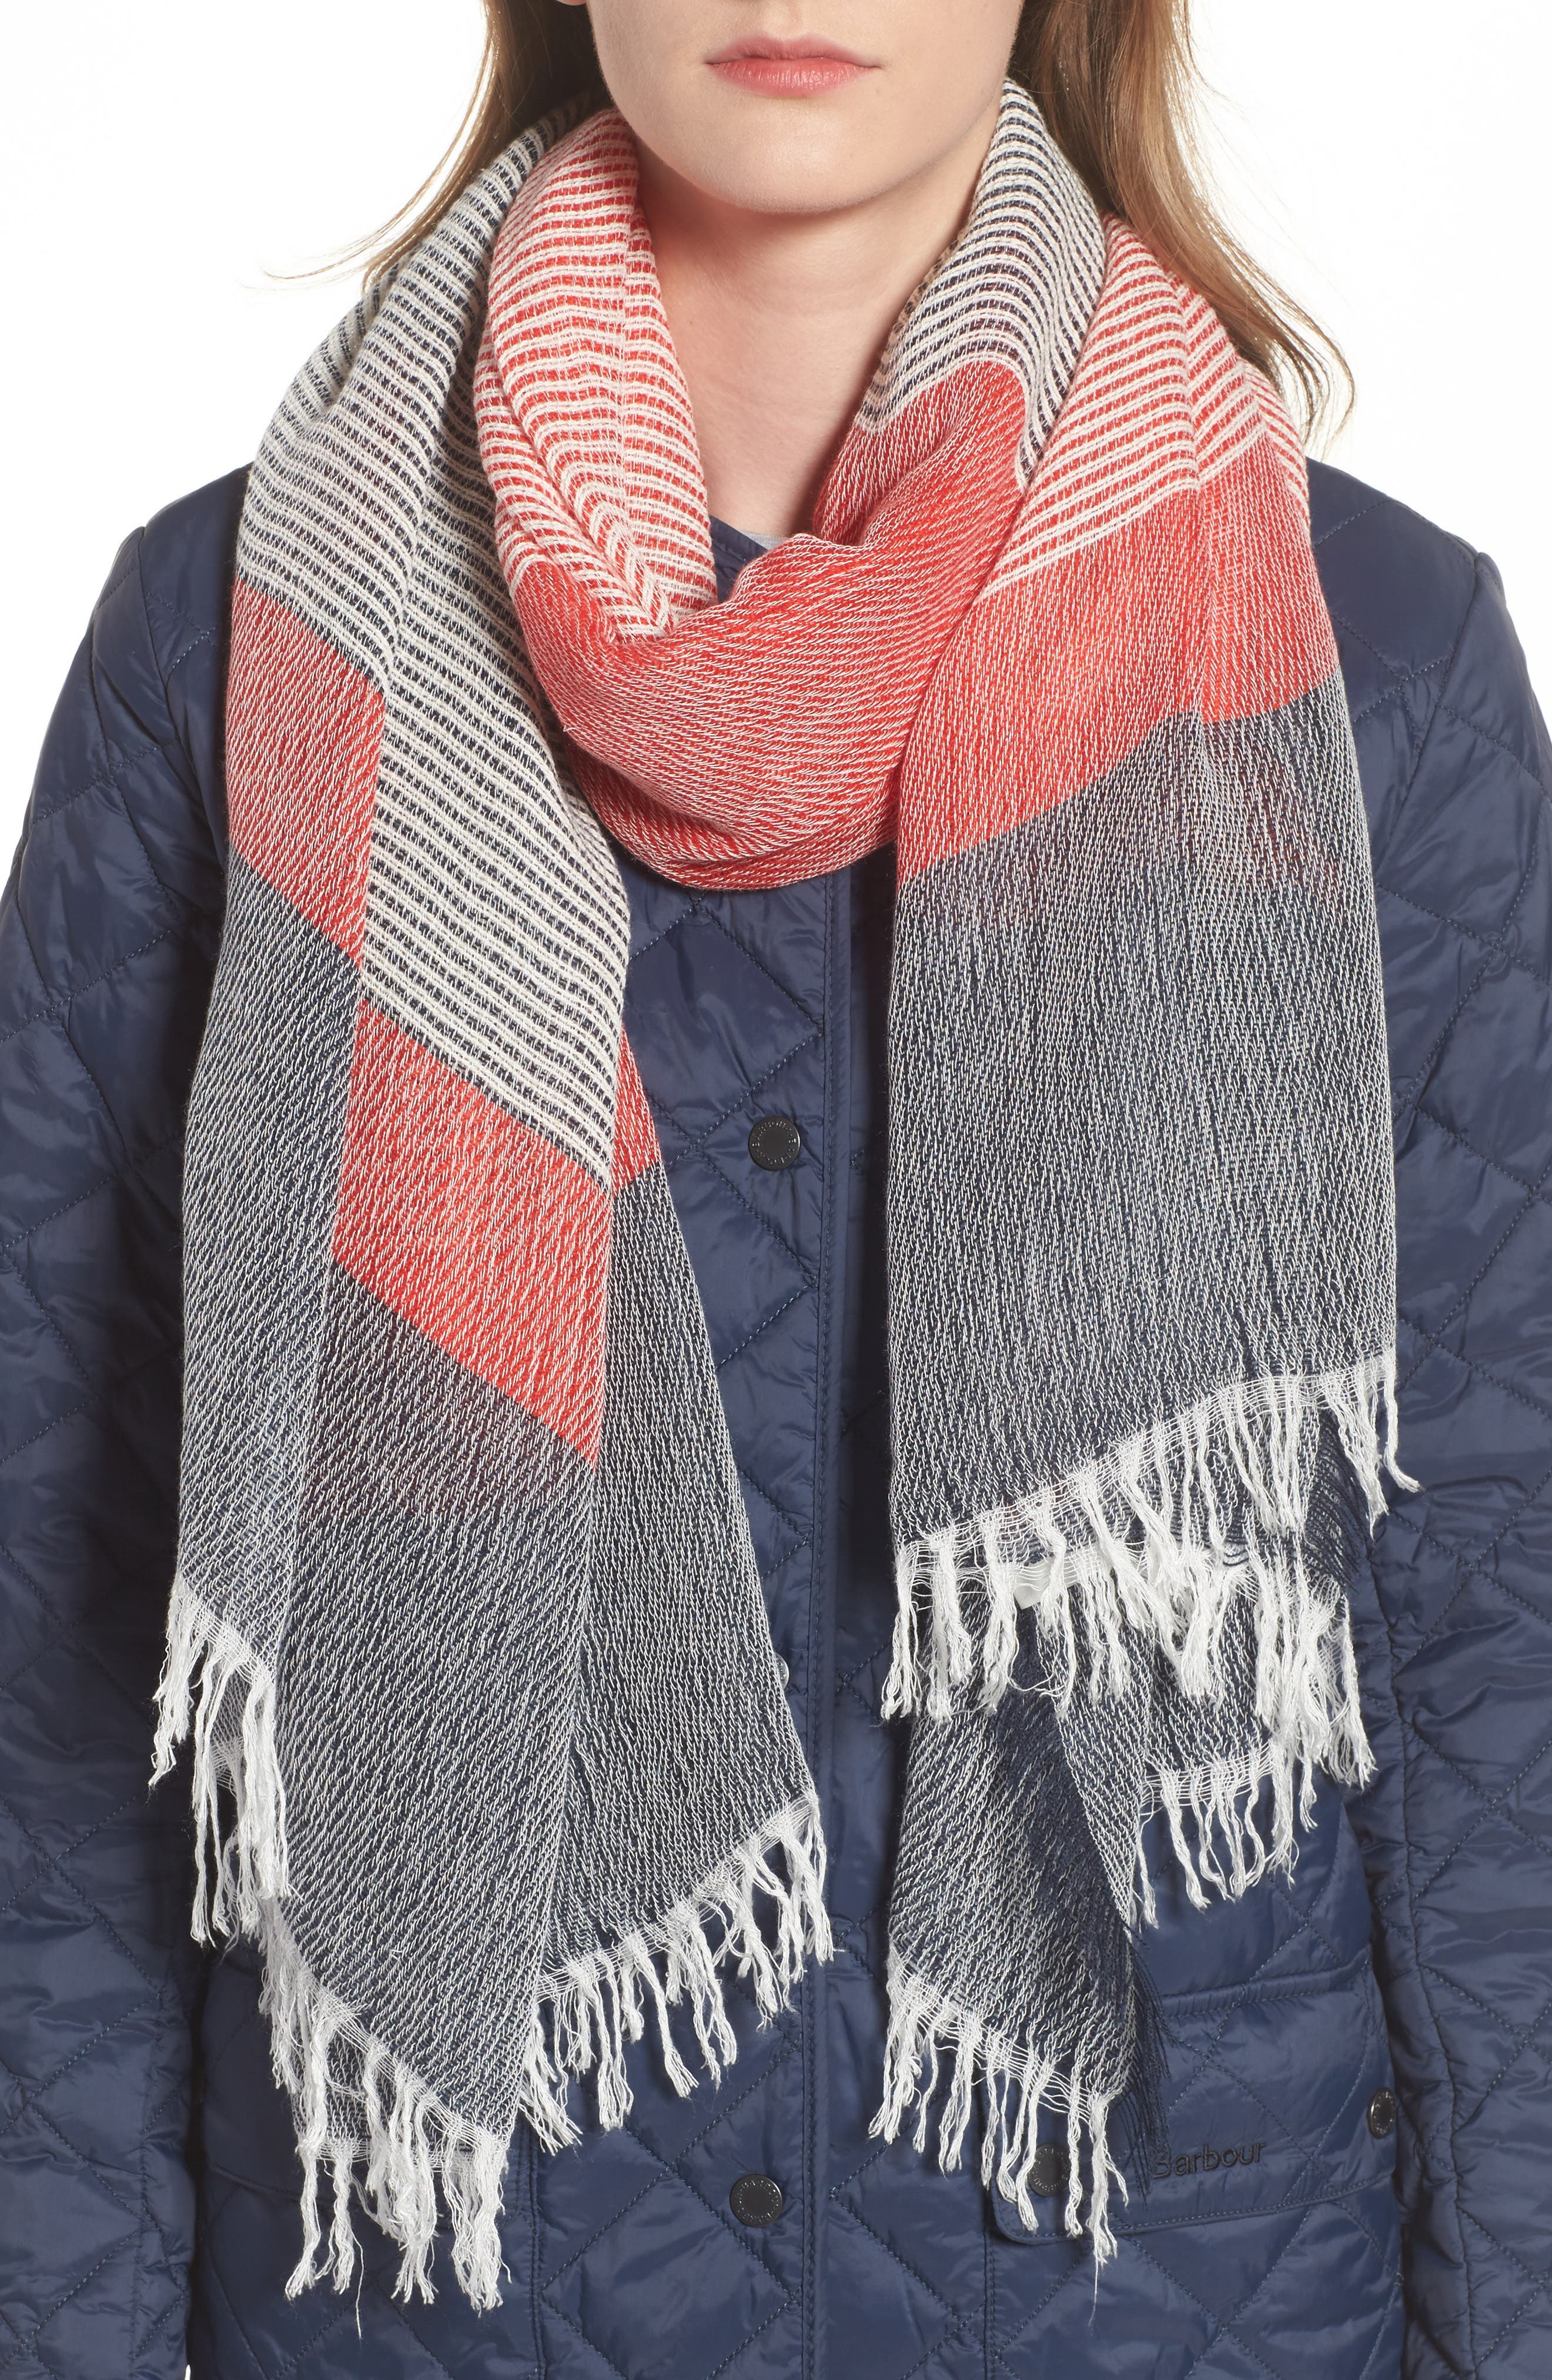 Whitmore Scarf,                             Main thumbnail 1, color,                             Navy/ Red